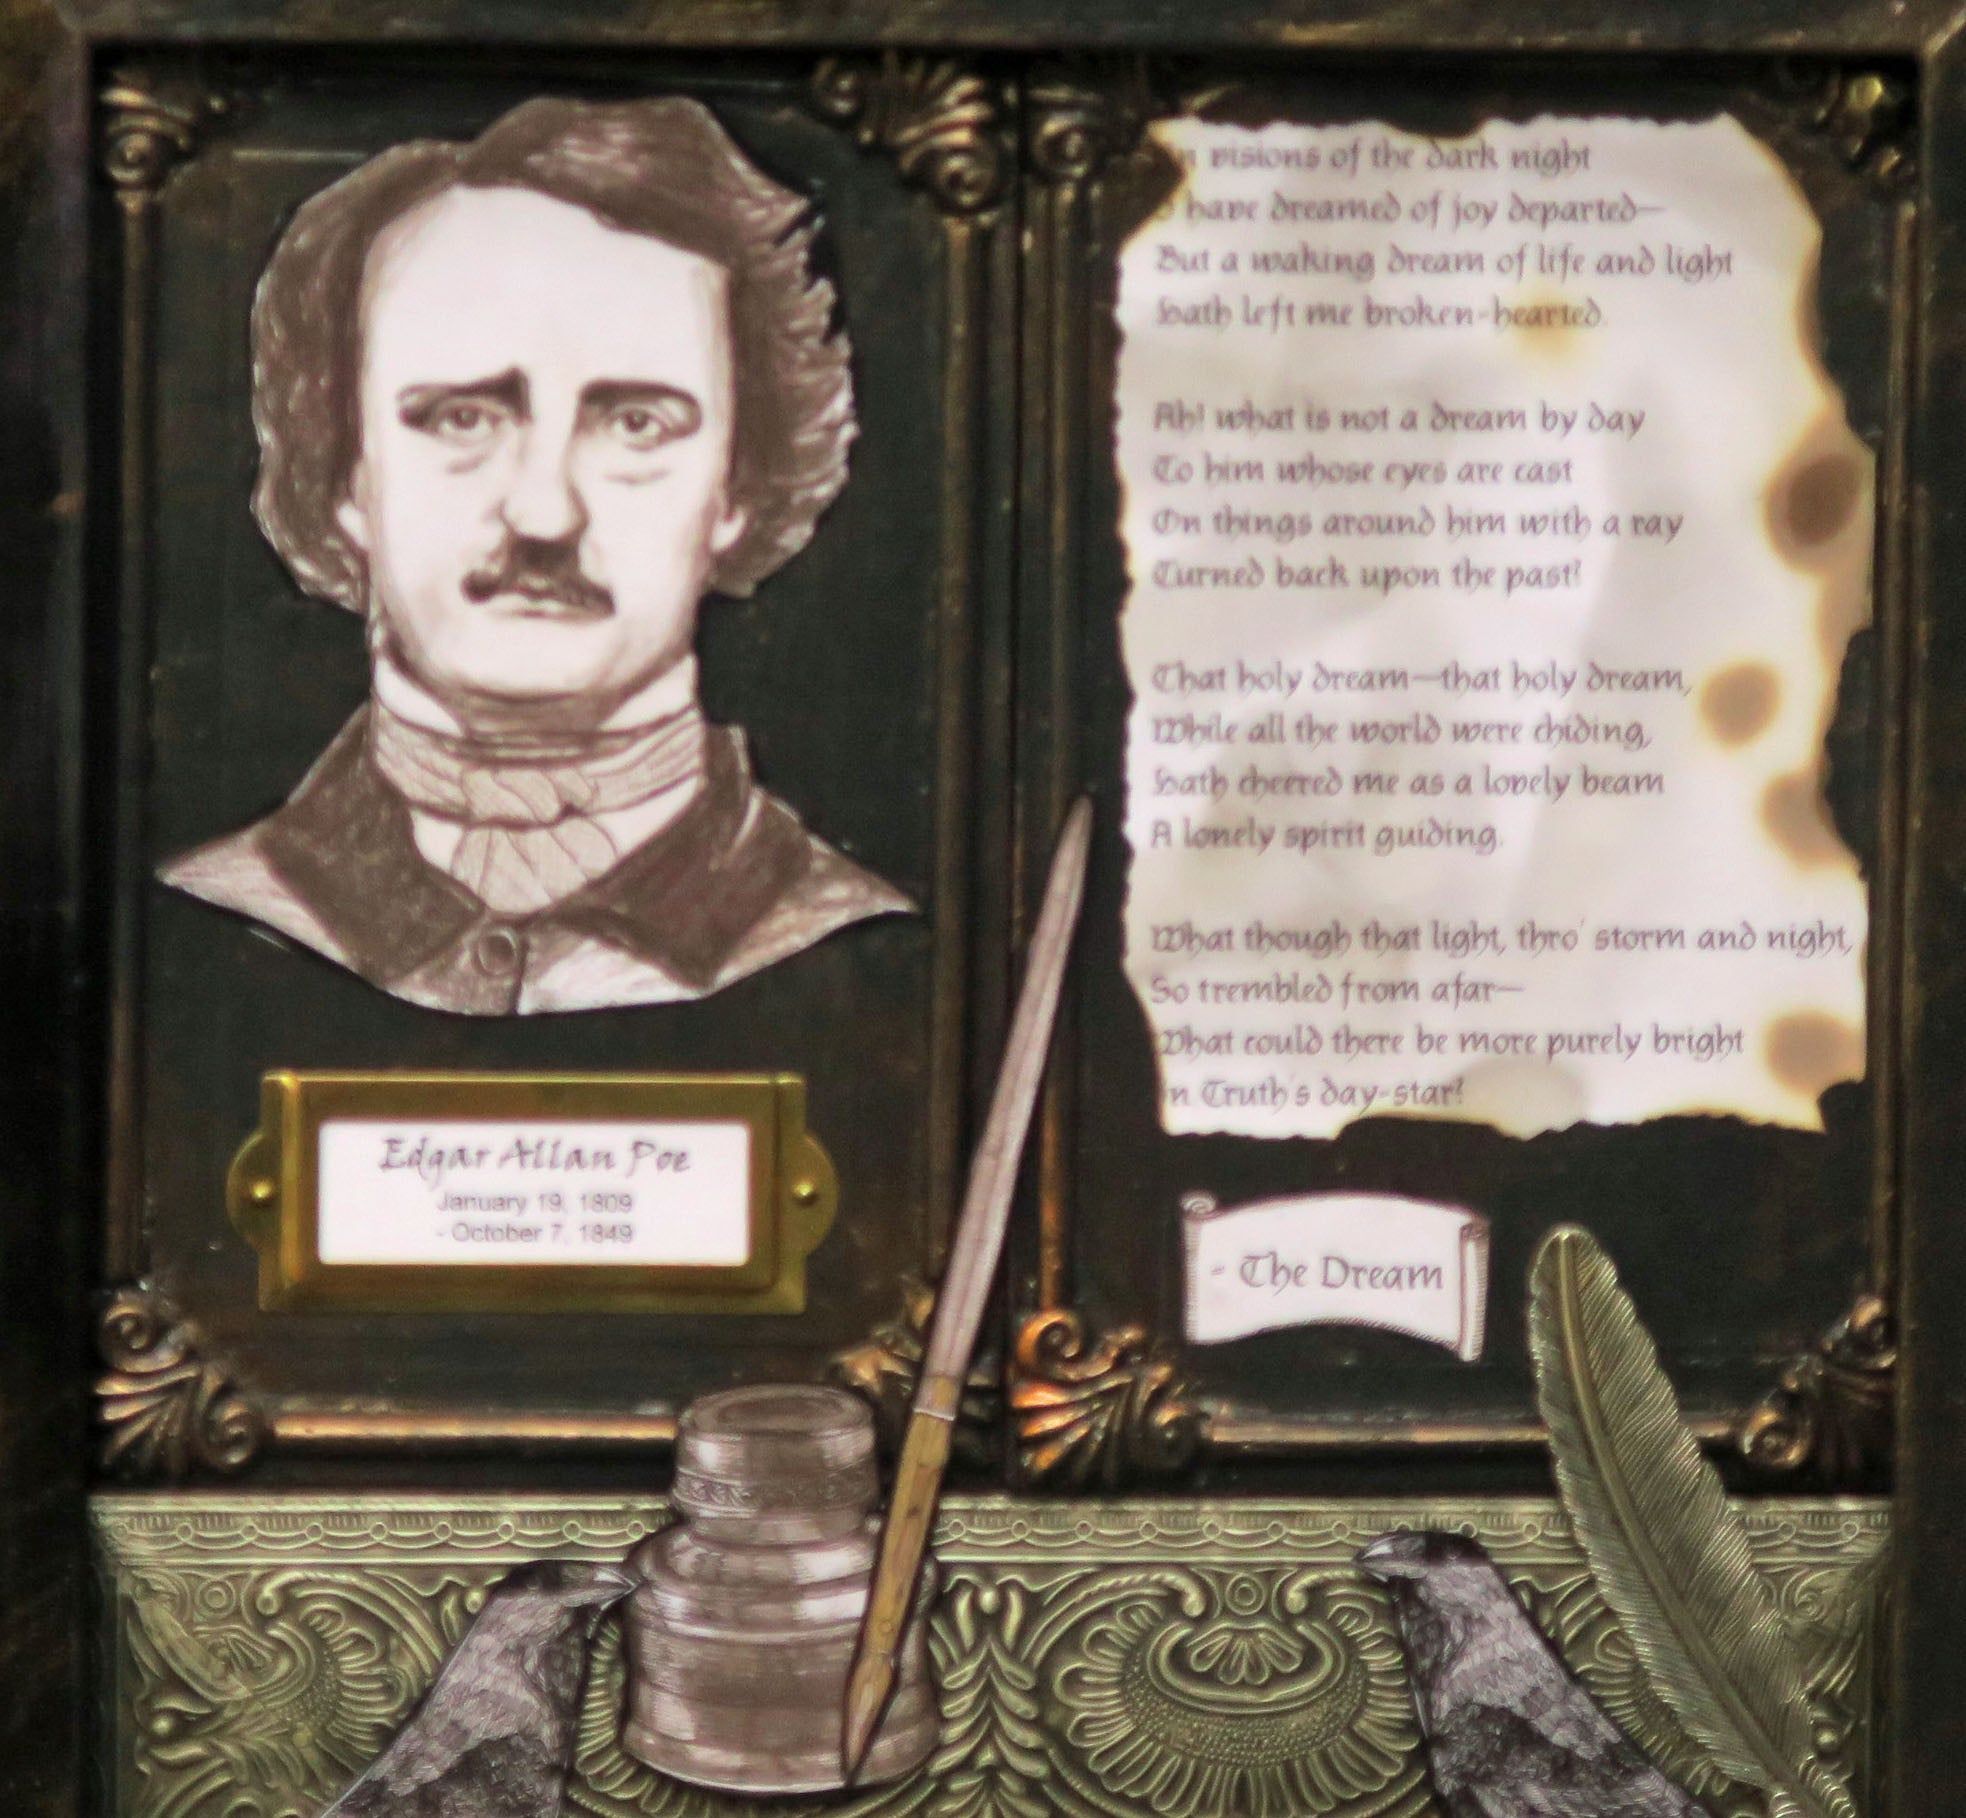 Edgar Allan Poe Shadowbox with The Dream poem